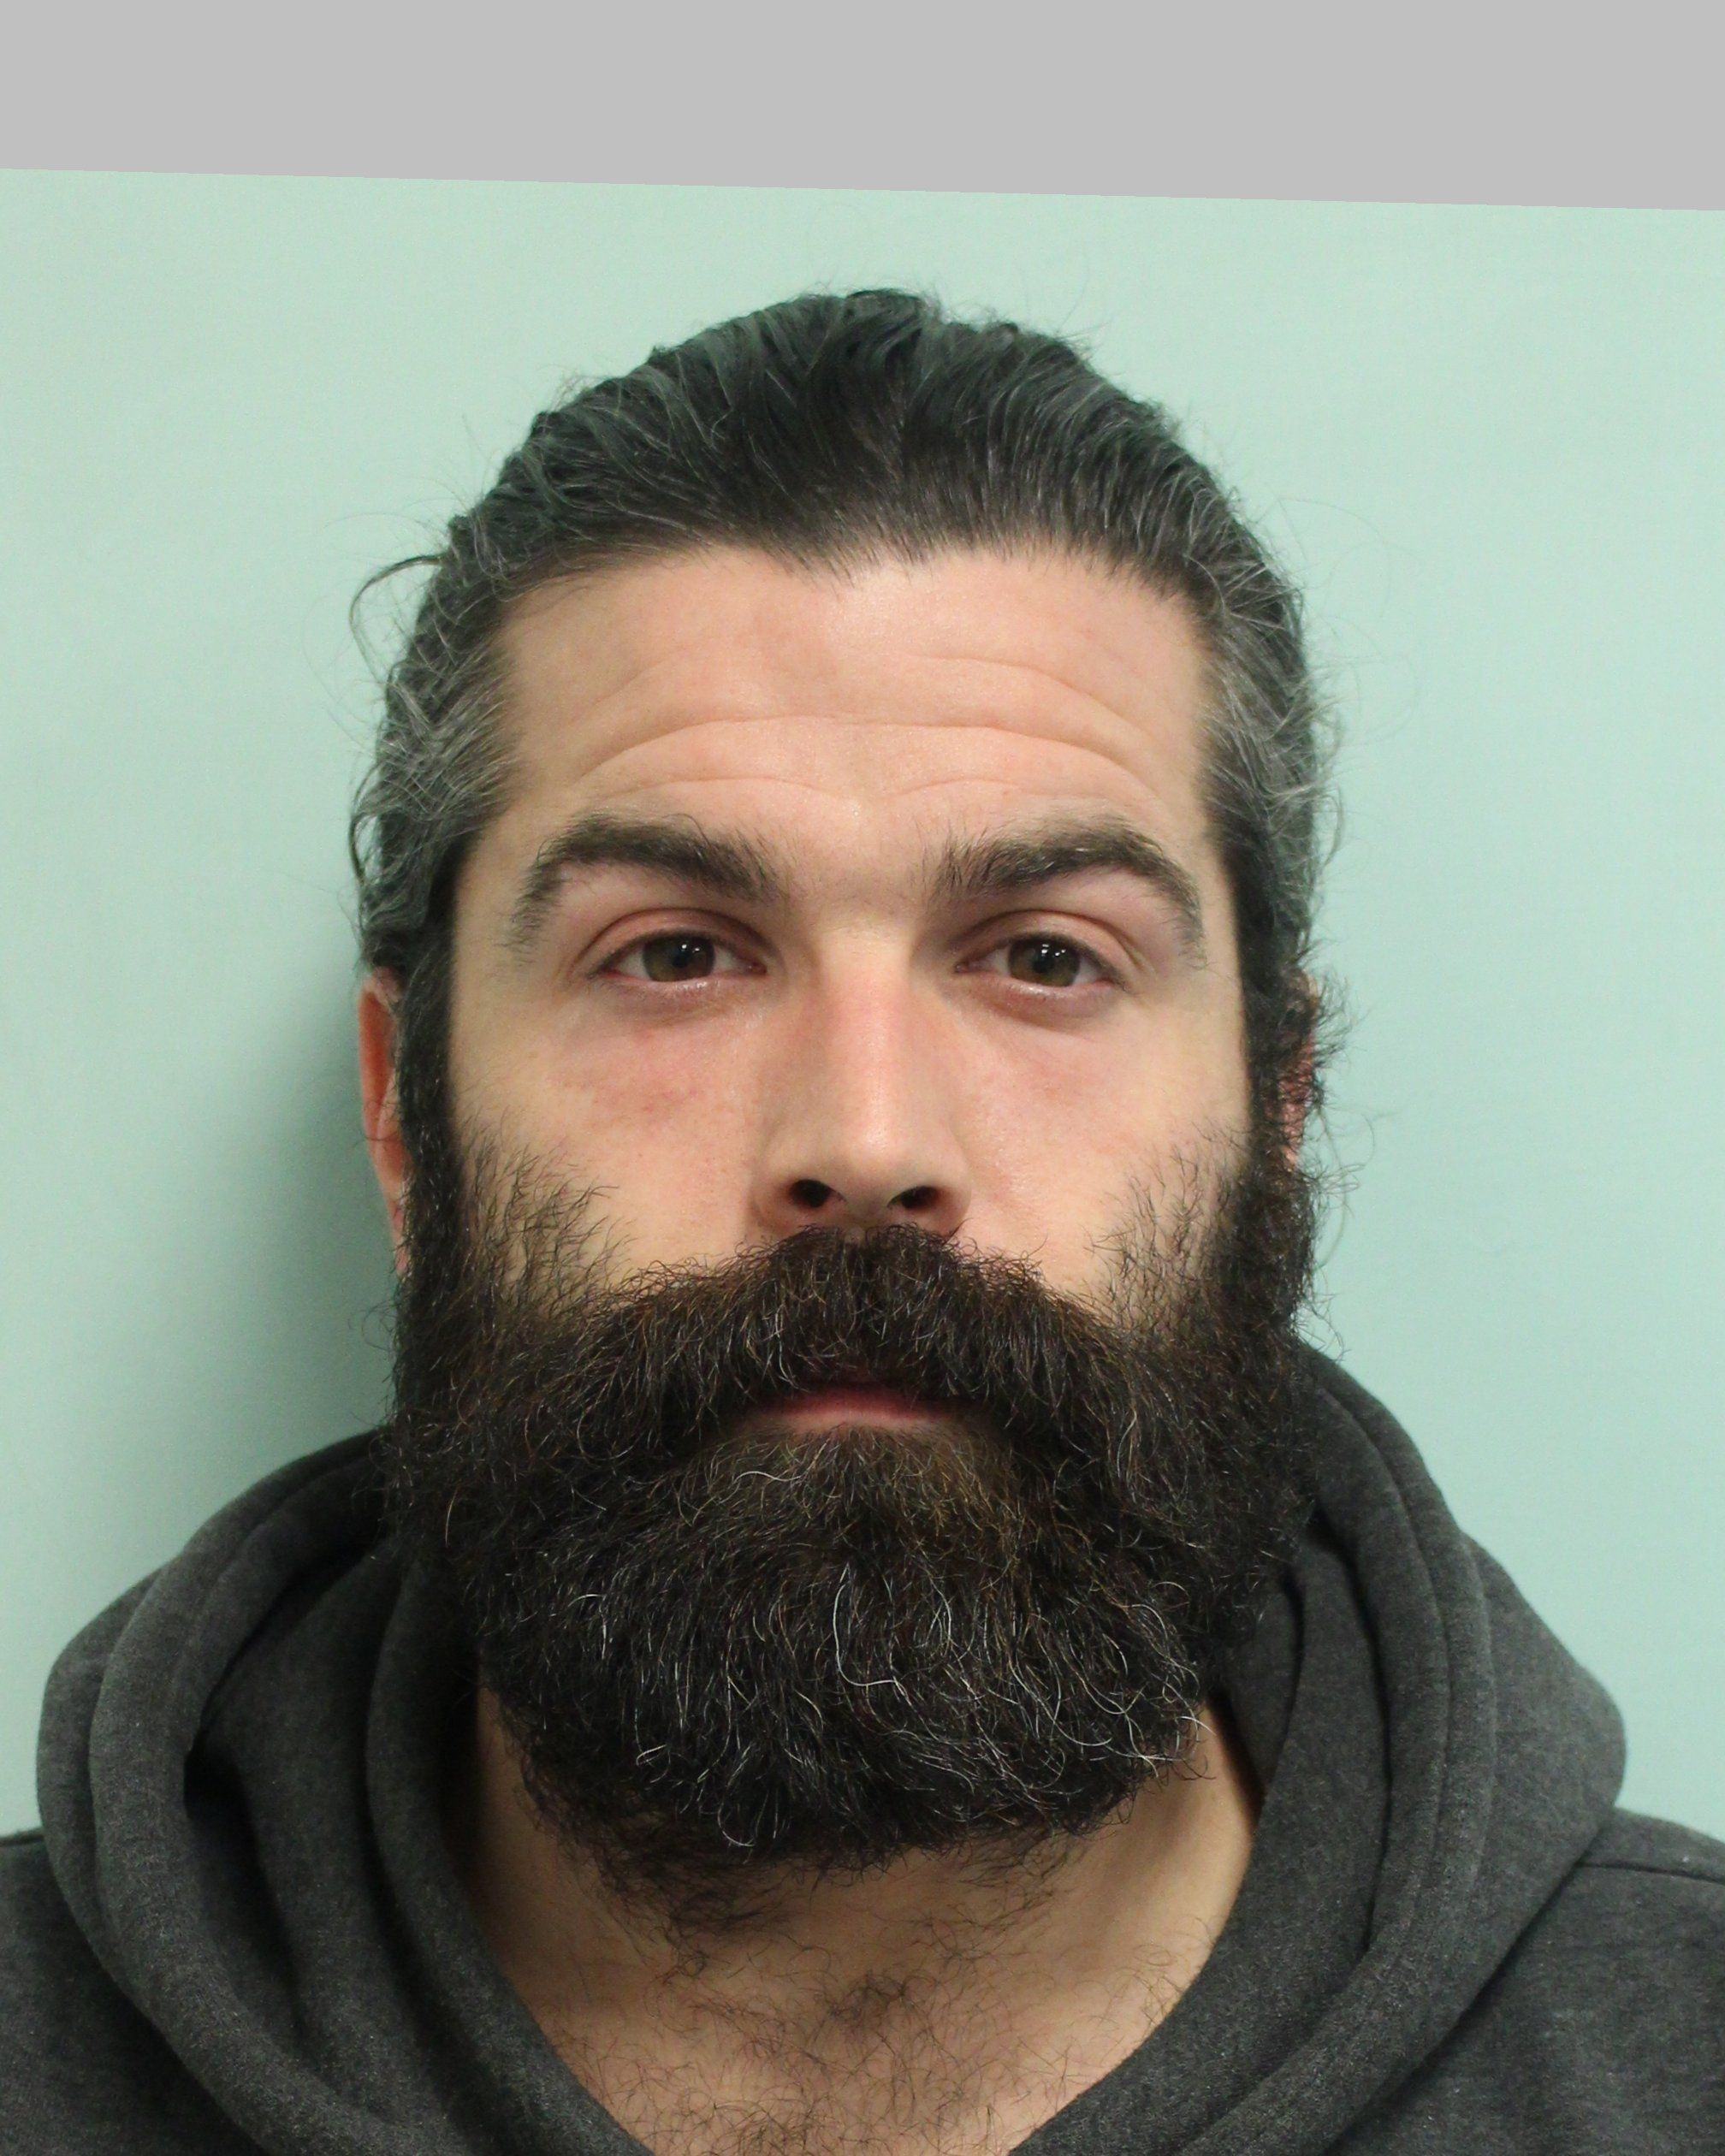 Man Jailed For Assaulting Girlfriend Now Has To Tell Police When He Has Sex With Someone